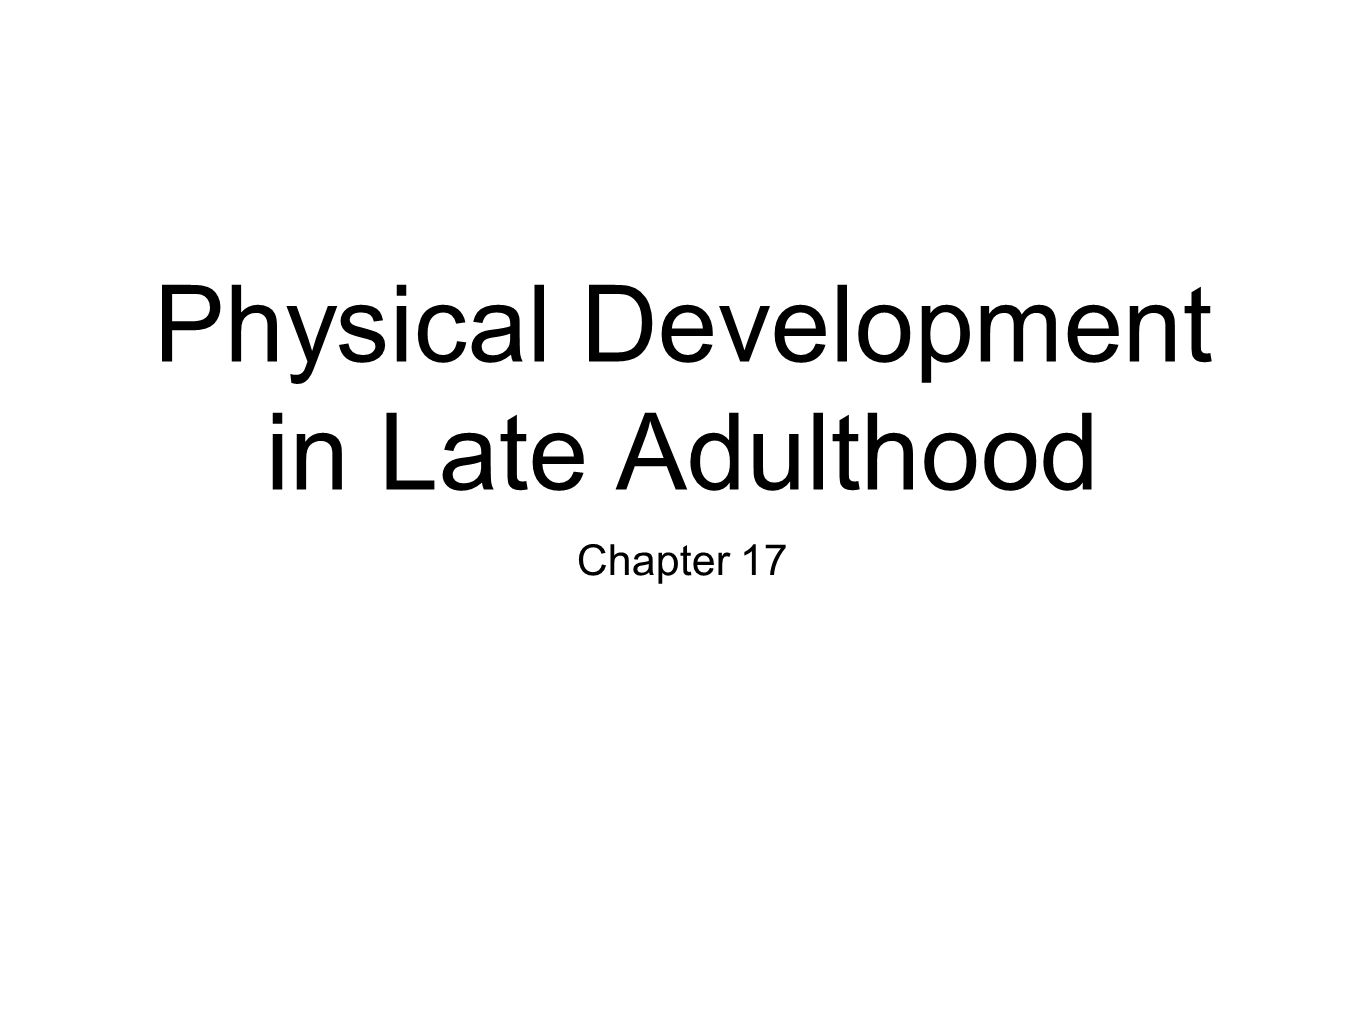 development in late adulthood essay Get started physical development in late adulthood and cognitive development in late adulthood develop a framework for viewing late adulthood one thing i think of is the large amount of variability among the young-old (65 to 84 years of age) and the oldest-old (85 years and older)and the individuals within each span of years.